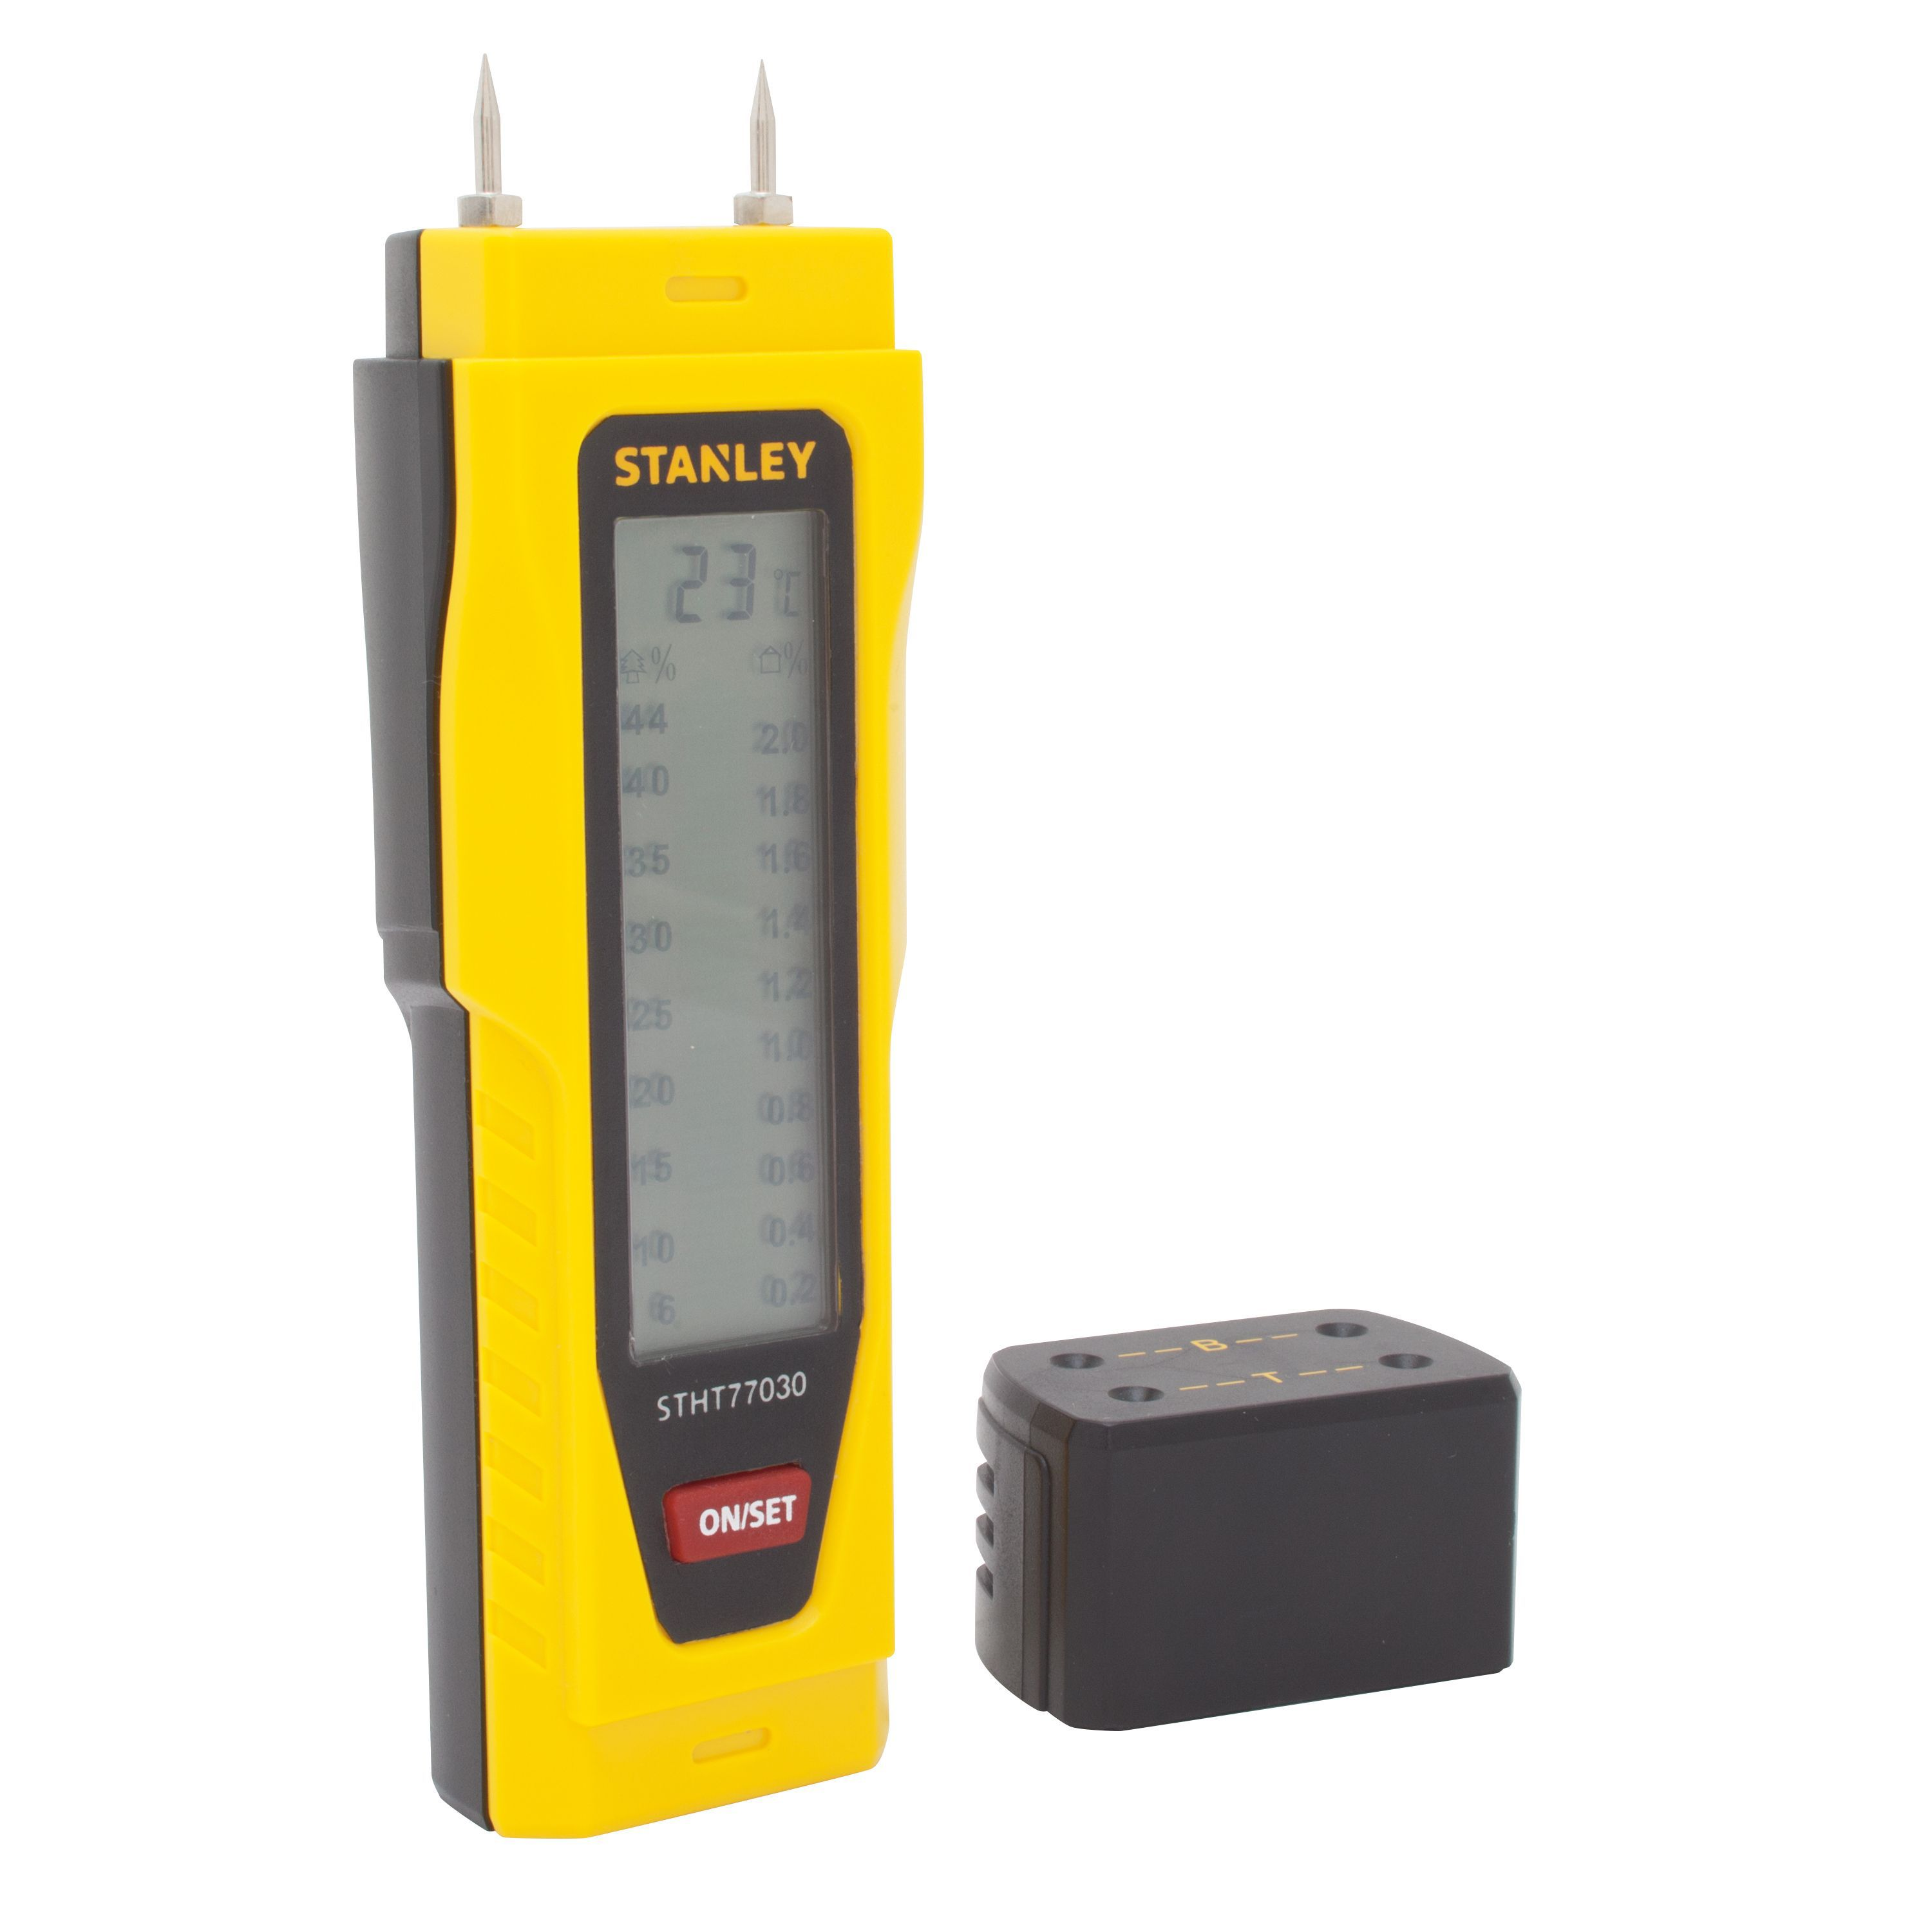 Stanley Cordless Moisture Meter Departments DIY at BampQ : 325356077030302c from www.diy.com size 3000 x 3000 jpeg 227kB